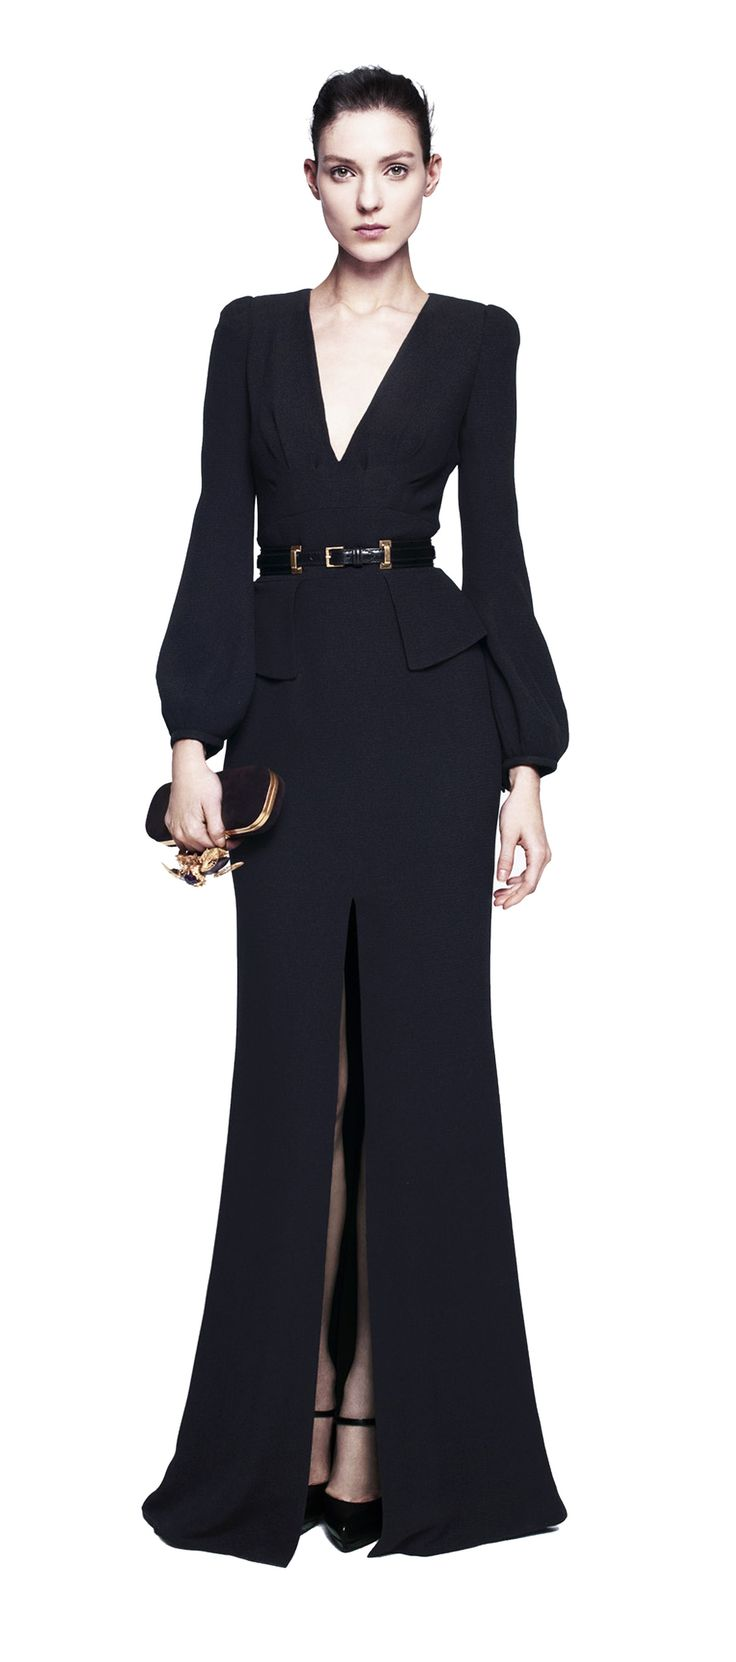 Alexander McQueen | Bell-Sleeve Black Crepe Wool Floor Lenght Gown with deep v-neck, trompe l'oeil belt and central tigh-high slit